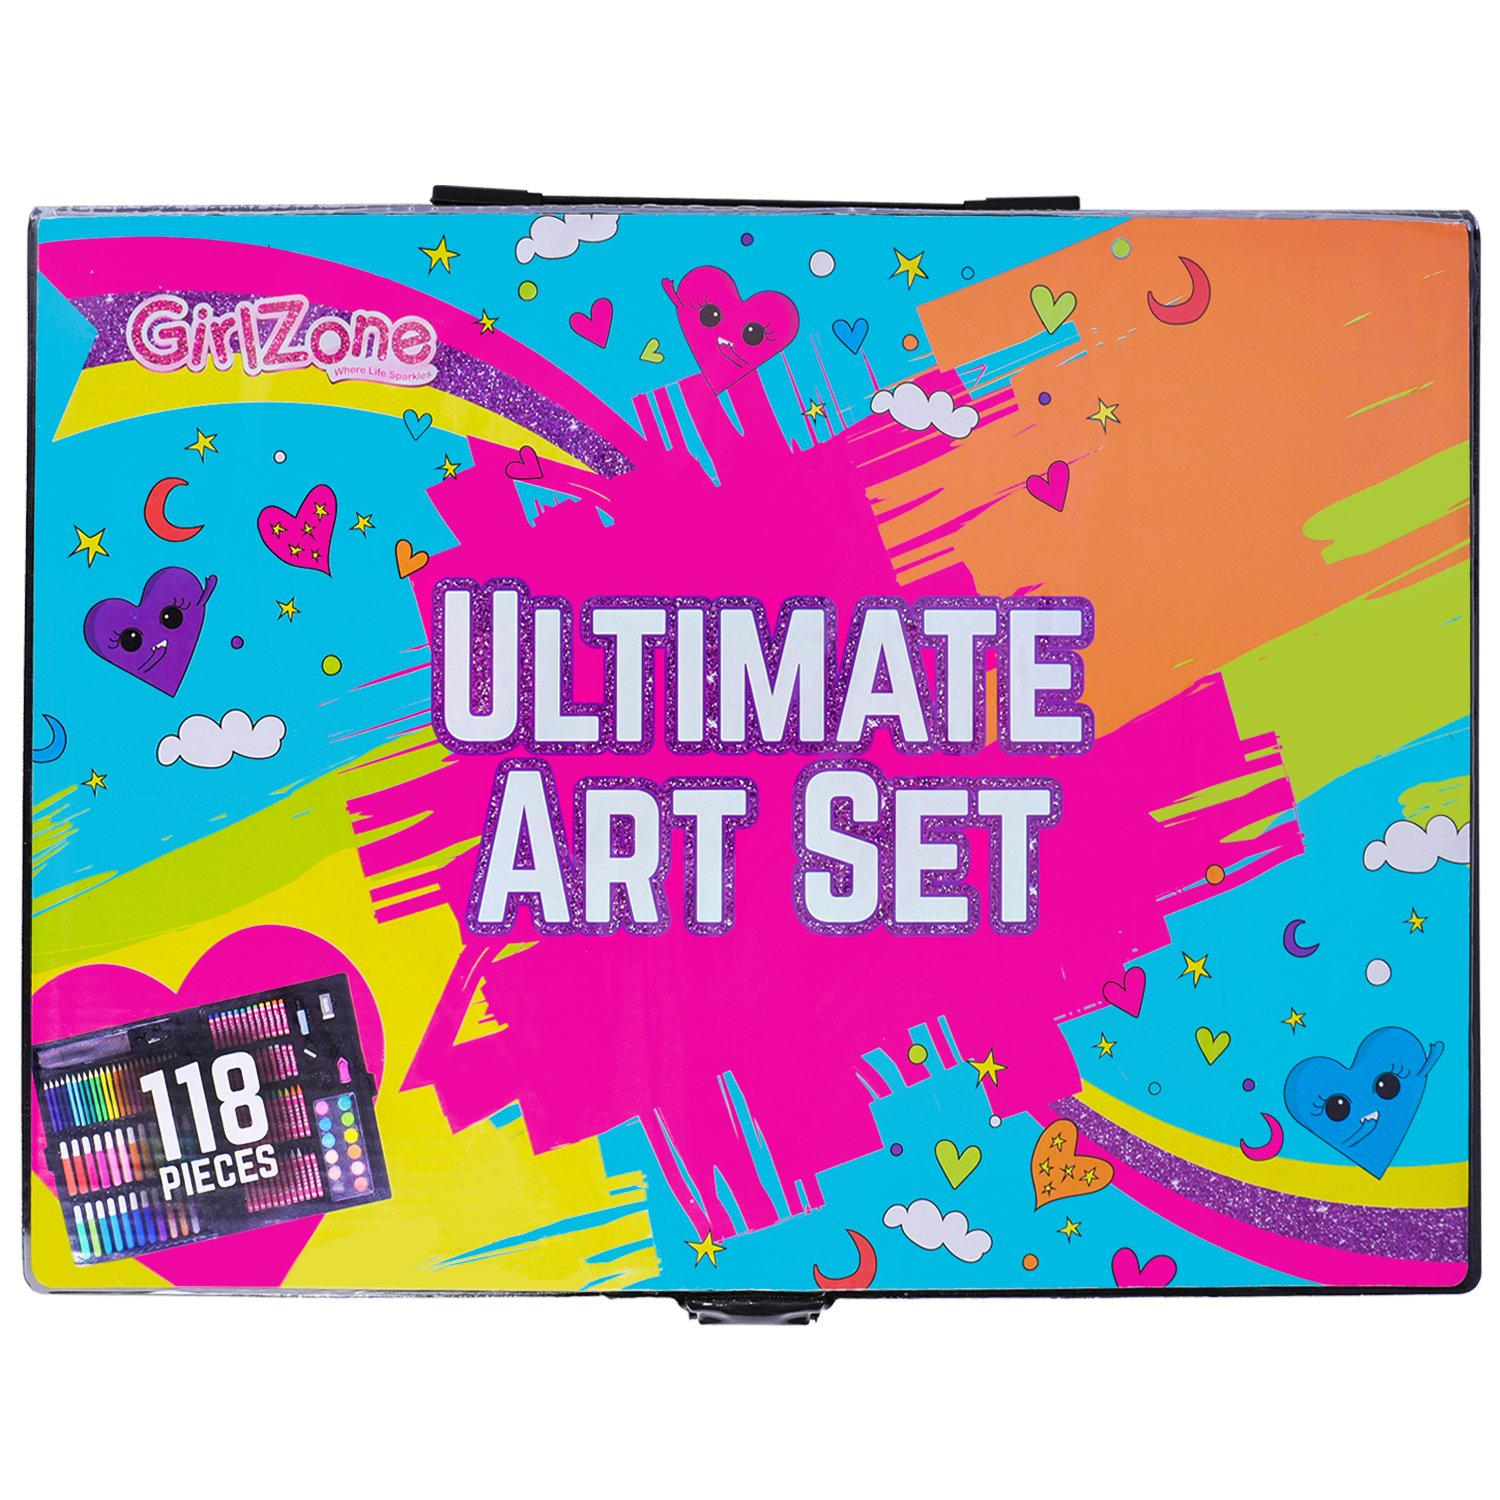 GirlZone Ultimate Art Set For Kids 118 Pieces Birthday Present Gifts Girls Age 3 4 5 6 7 8 9 Years Old Amazoncouk Toys Games